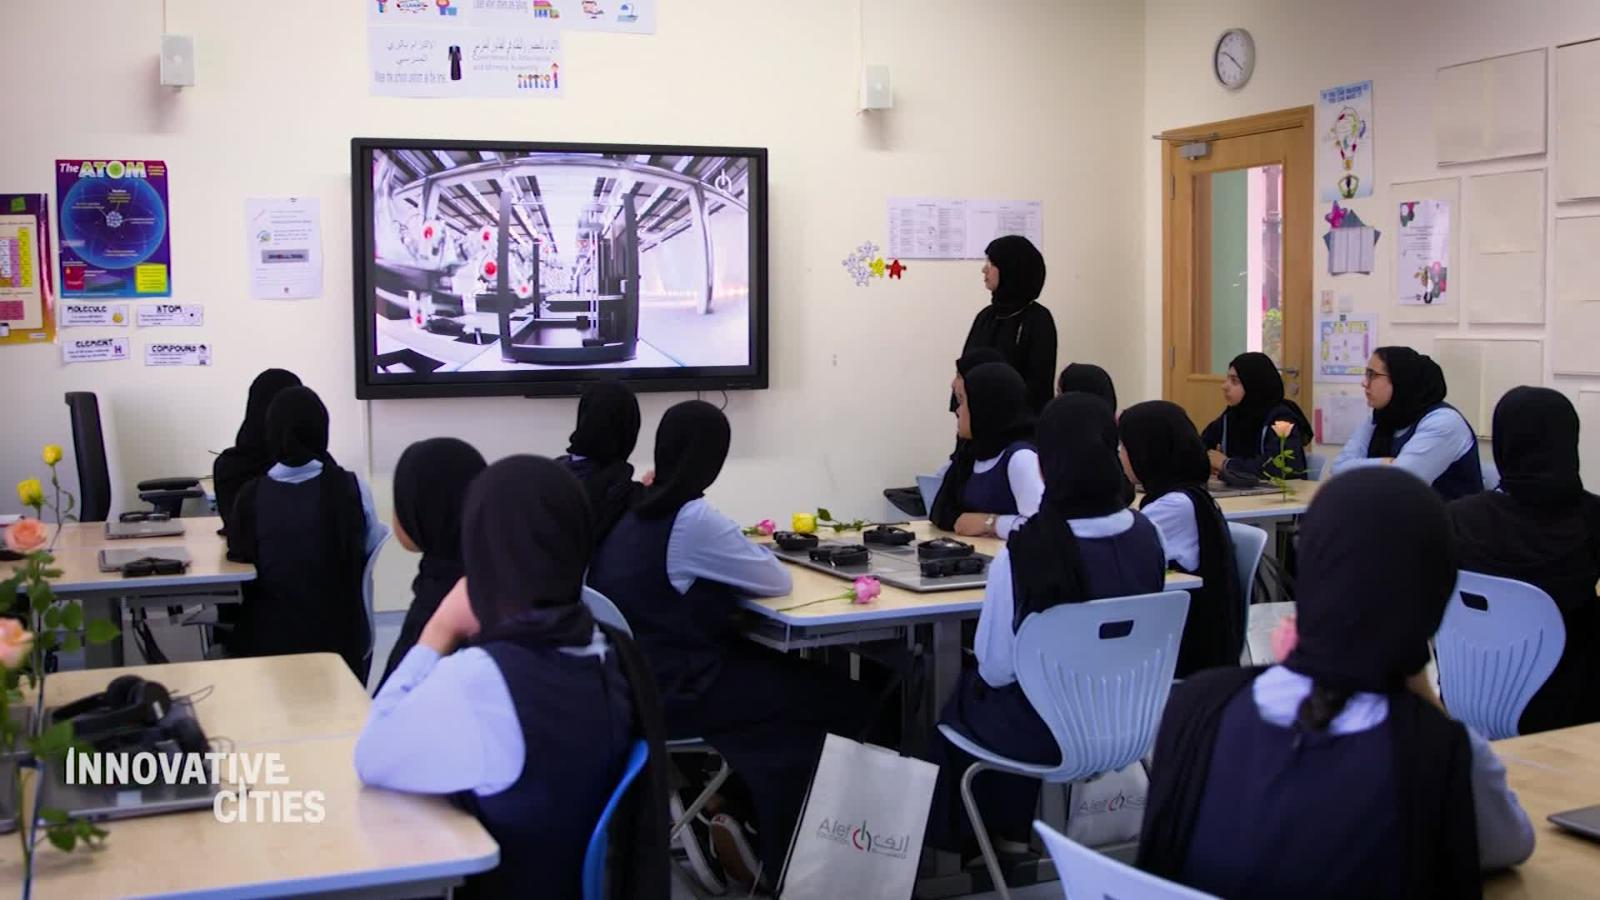 Is artificial intelligence the future of education?